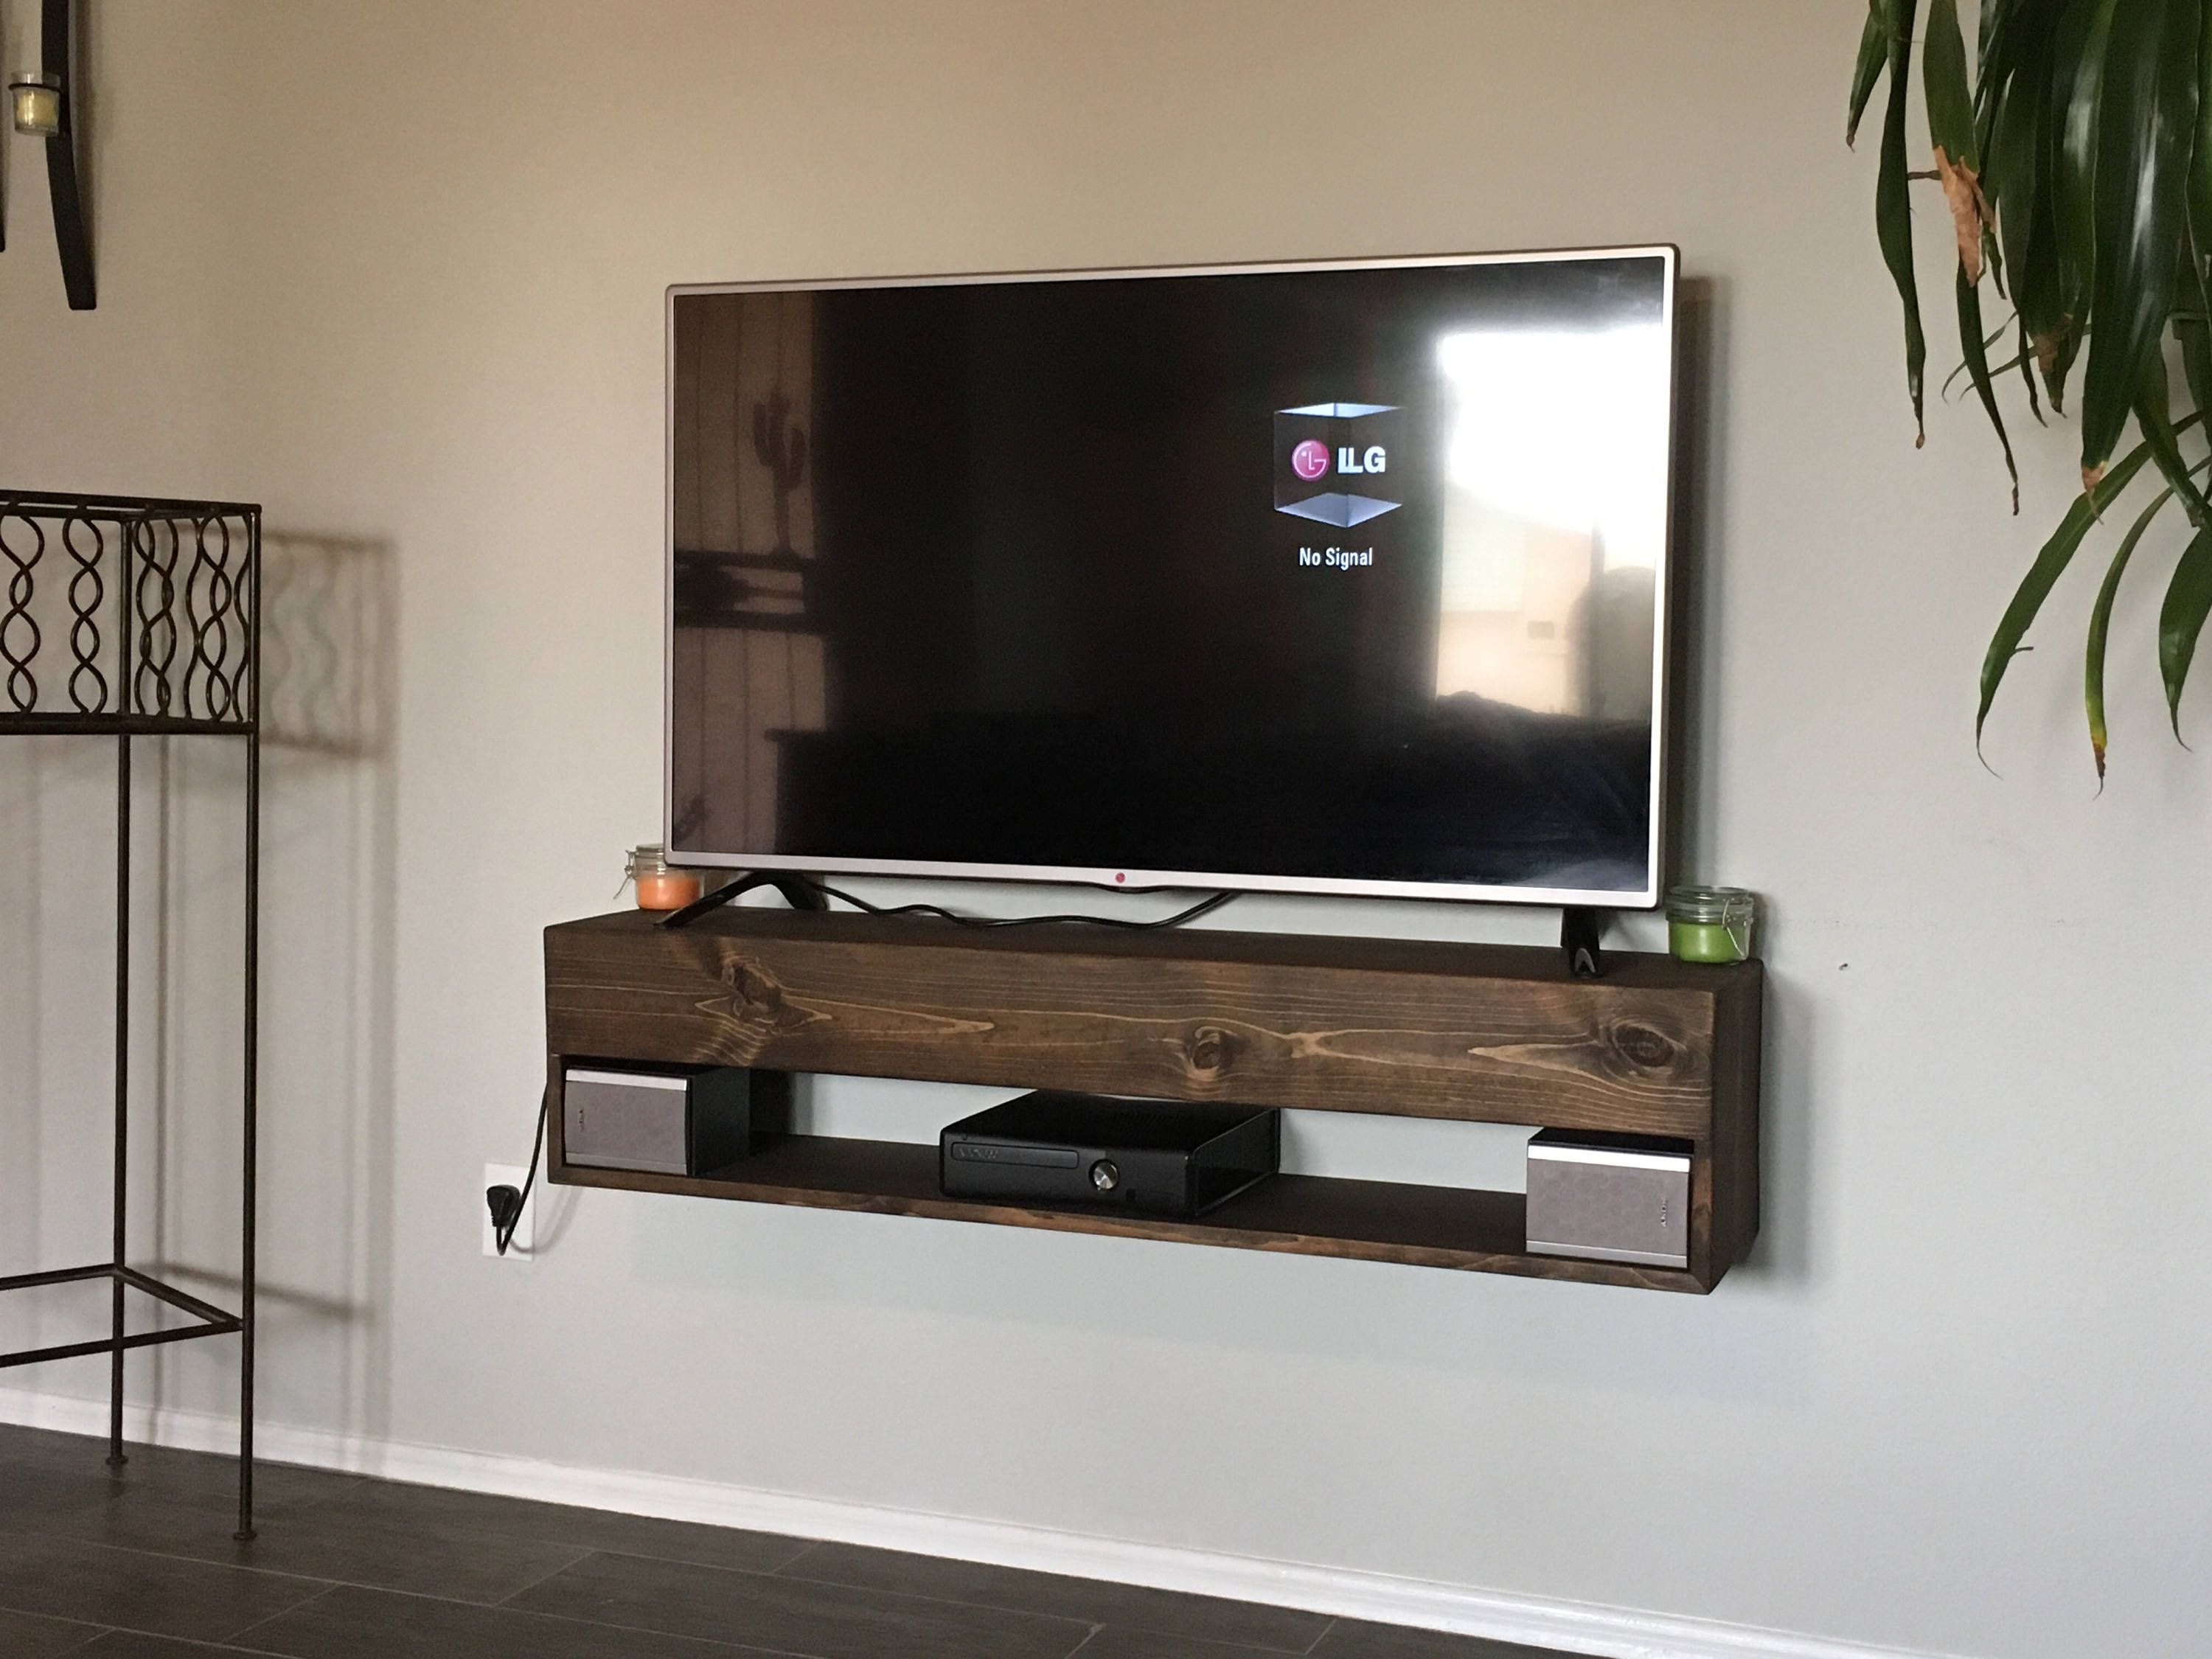 Tv Console Rustic Floating Tv Console Entertainment Center Floating Shelves Entertainment Center Floating Entertainment Center Floating Tv Console